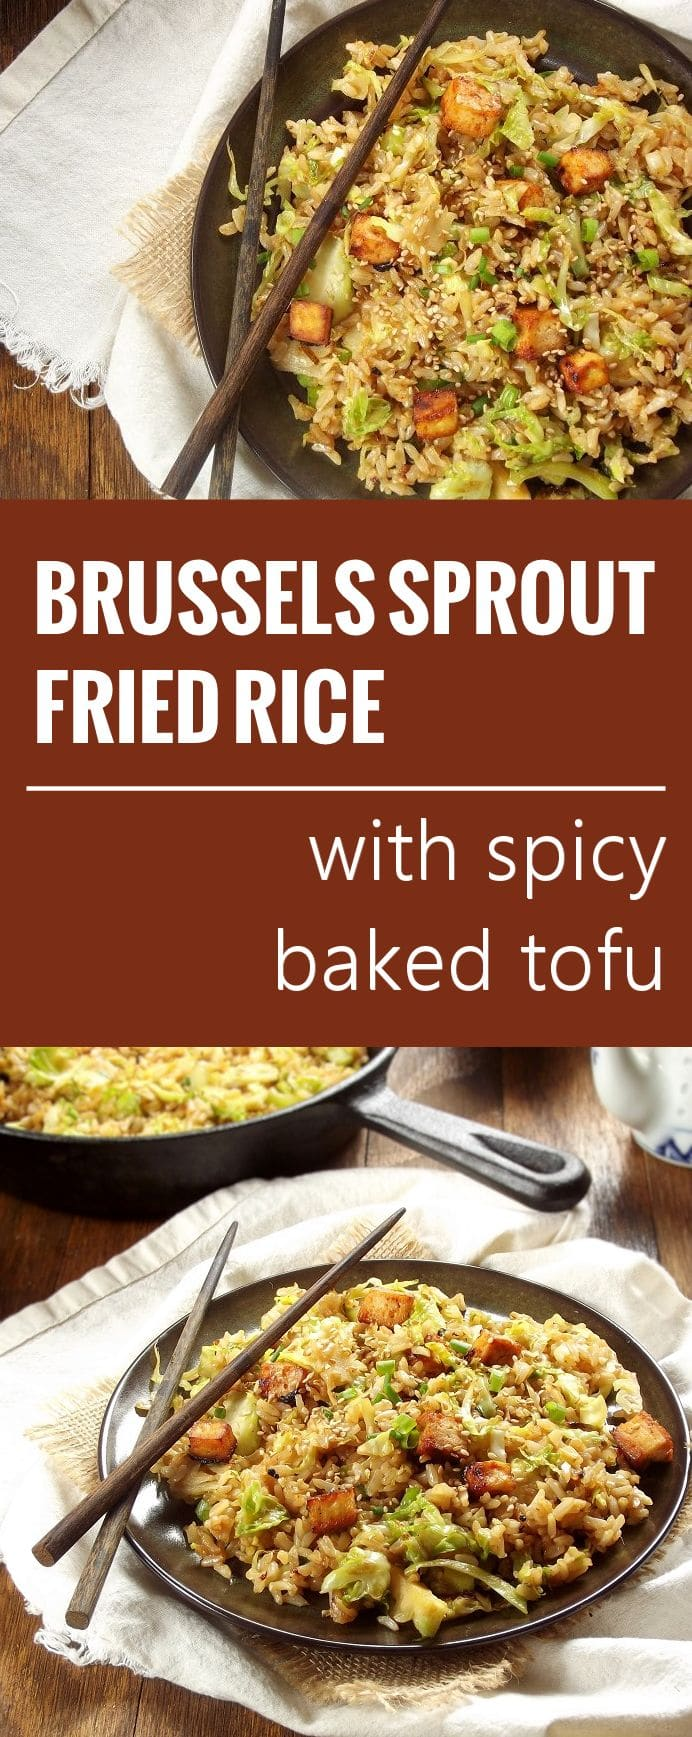 Brussels Sprout Fried Rice with Spicy Tofu - Connoisseurus Veg